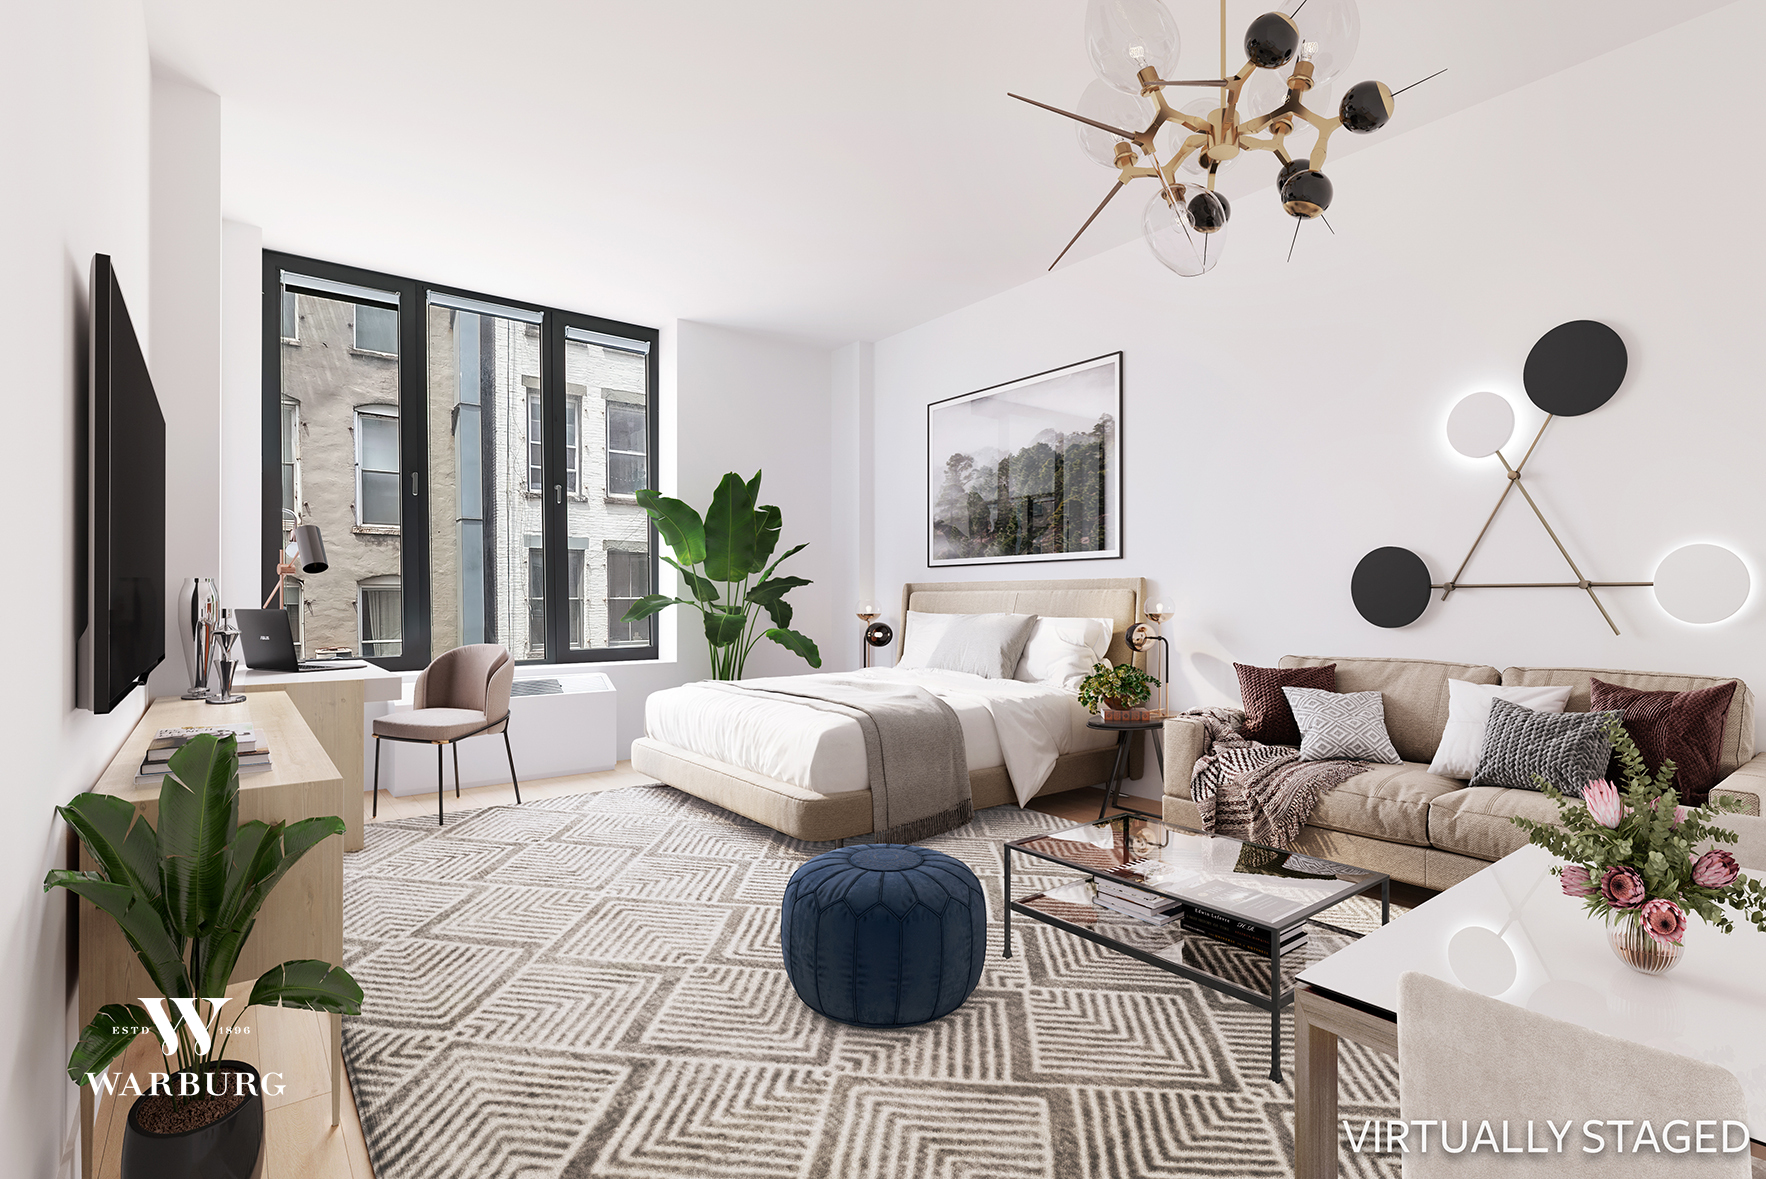 Live the dream in this chic, loft-like studio in the center of it all! With soaring ceiling heights (10 ft+), oversized windows and modern finishes—including a Bosch dishwasher, Miele stove, SubZero fridge, disposal, and in-unit Bosch washer/dryer—this 446 square-foot studio makes for the perfect downtown residence. The primary room is graciously sized with plenty of space for distinct bedroom, living and work areas. The spa-like, oversized bathroom is outfitted with marble finishes and a soaking tub/shower.  Built in 2005, One Kenmare Square at 210 Lafayette Street was designed by Richard Gluckman and is distinguished by its curved facade. The boutique luxury condominium has a 24-hour doorman, live-in resident manager, fitness room and private storage available for purchase. With entrances on both Lafayette and Crosby Streets, the building is perfectly situated in the heart of Soho and offers easy access to transportation as well as the city's finest dining and shopping. Please note, no smoking is allowed per building policy and only one dog or cat may be kept in the unit.  There is a monthly capital assessment of $95.91 in effect through 12/31/2021.  *Some of the rooms in this apartment have been virtually staged. Photos shown are for representation only. You will find the virtually staged room, followed by the original room.